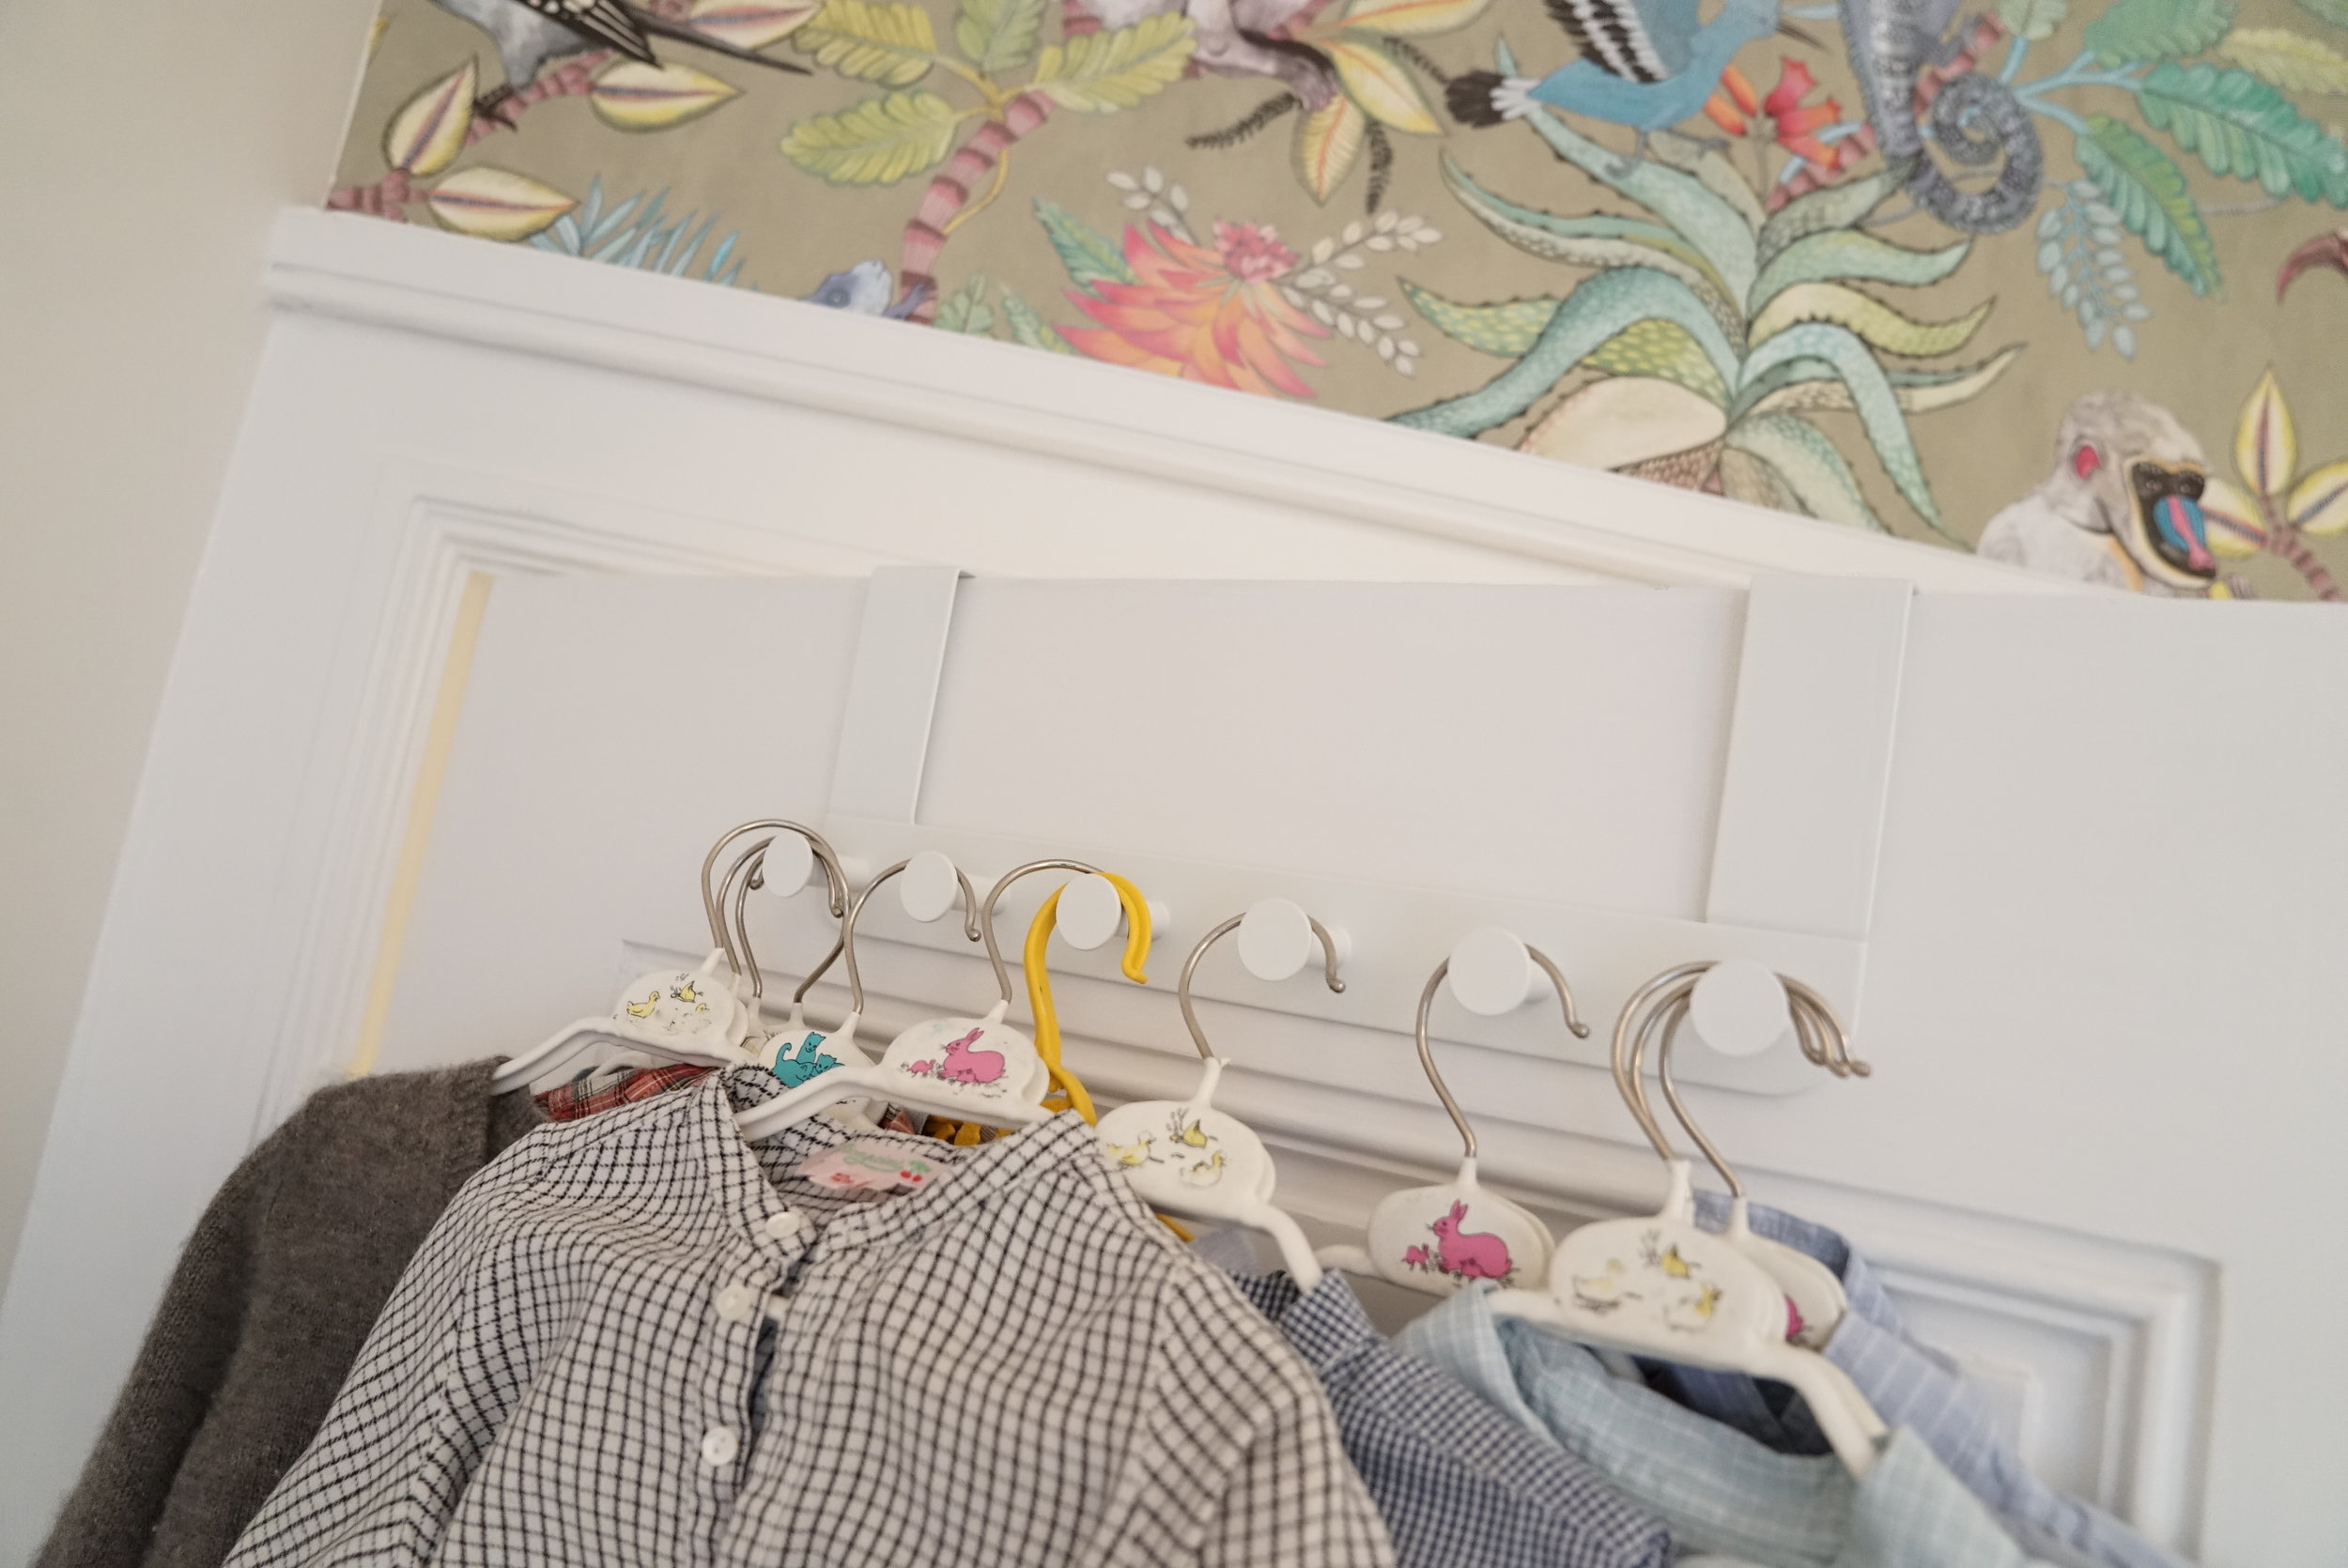 Little shirts on little hangers. Bonpoint is one of Bea's favourite kids clothing brands.